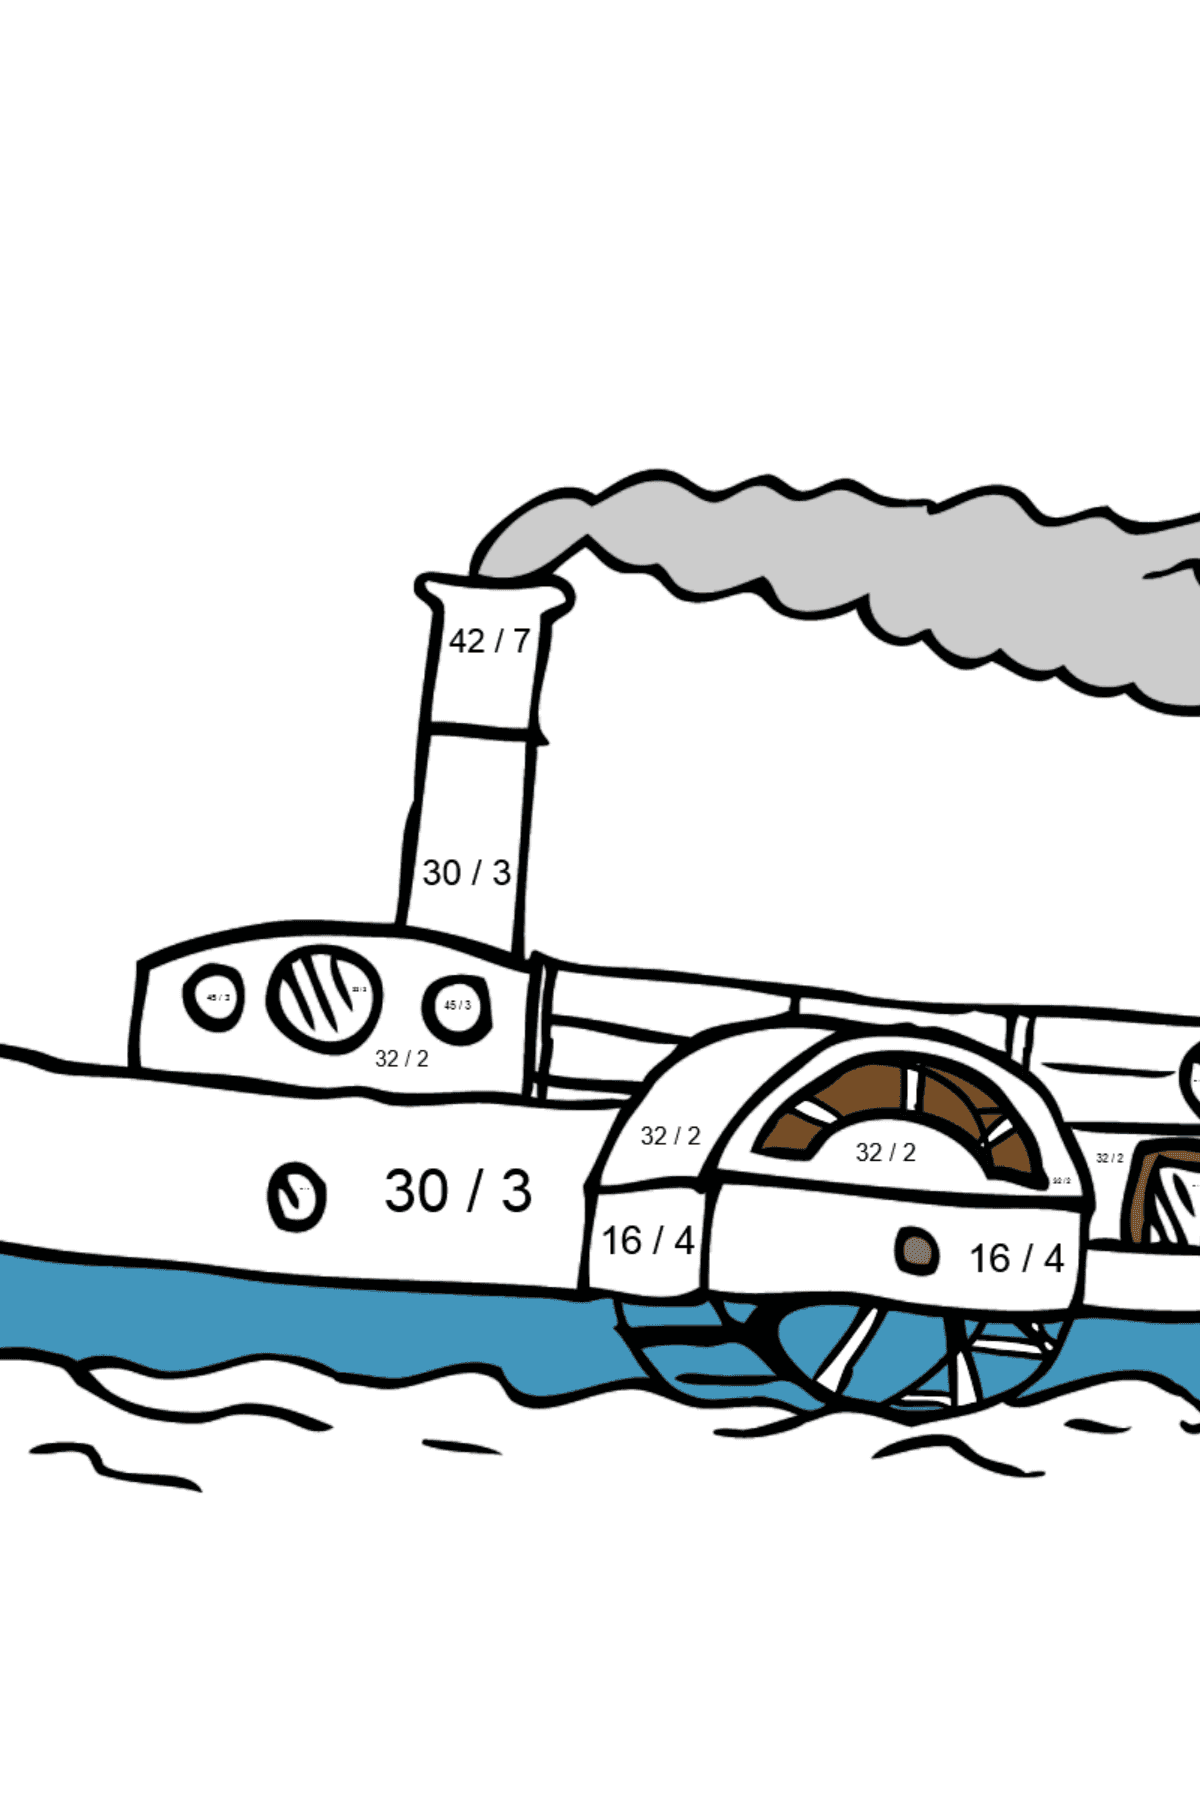 Coloring Page - A Ship with a Paddle Wheel - Math Coloring - Division for Kids